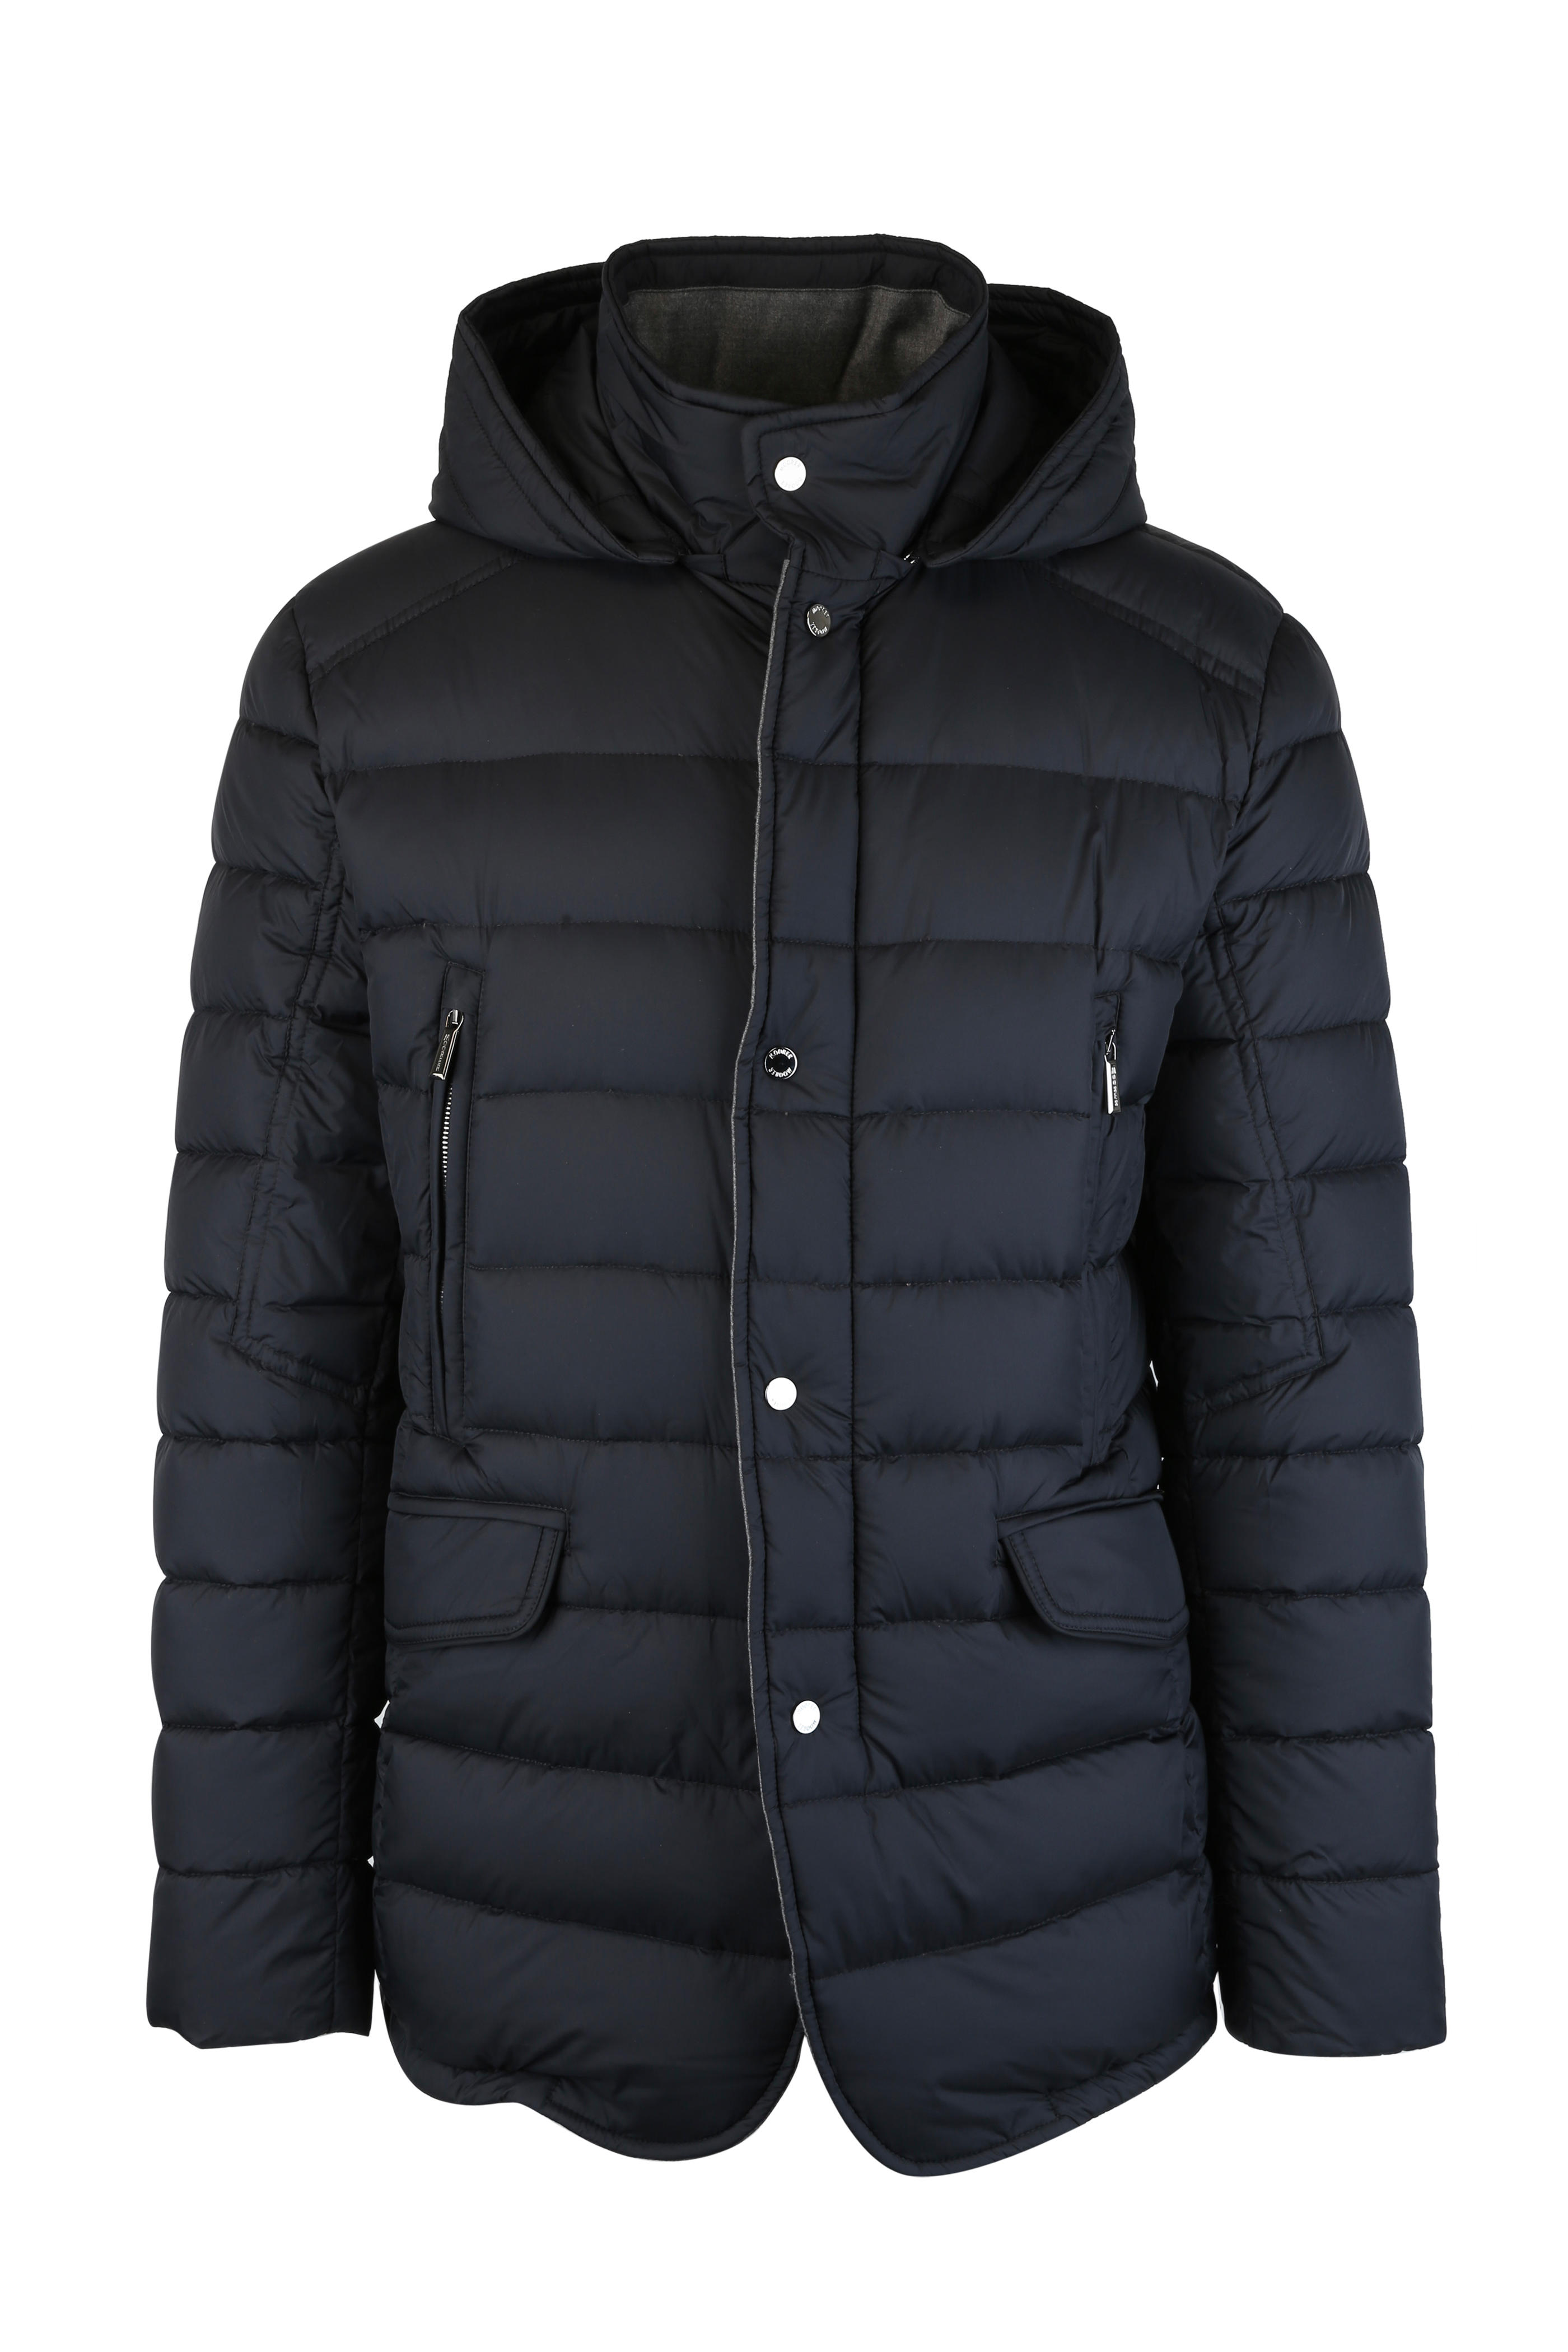 Moorer - Dark Blue Quilted Goose Down Hooded Jacket  e446c9d9f06